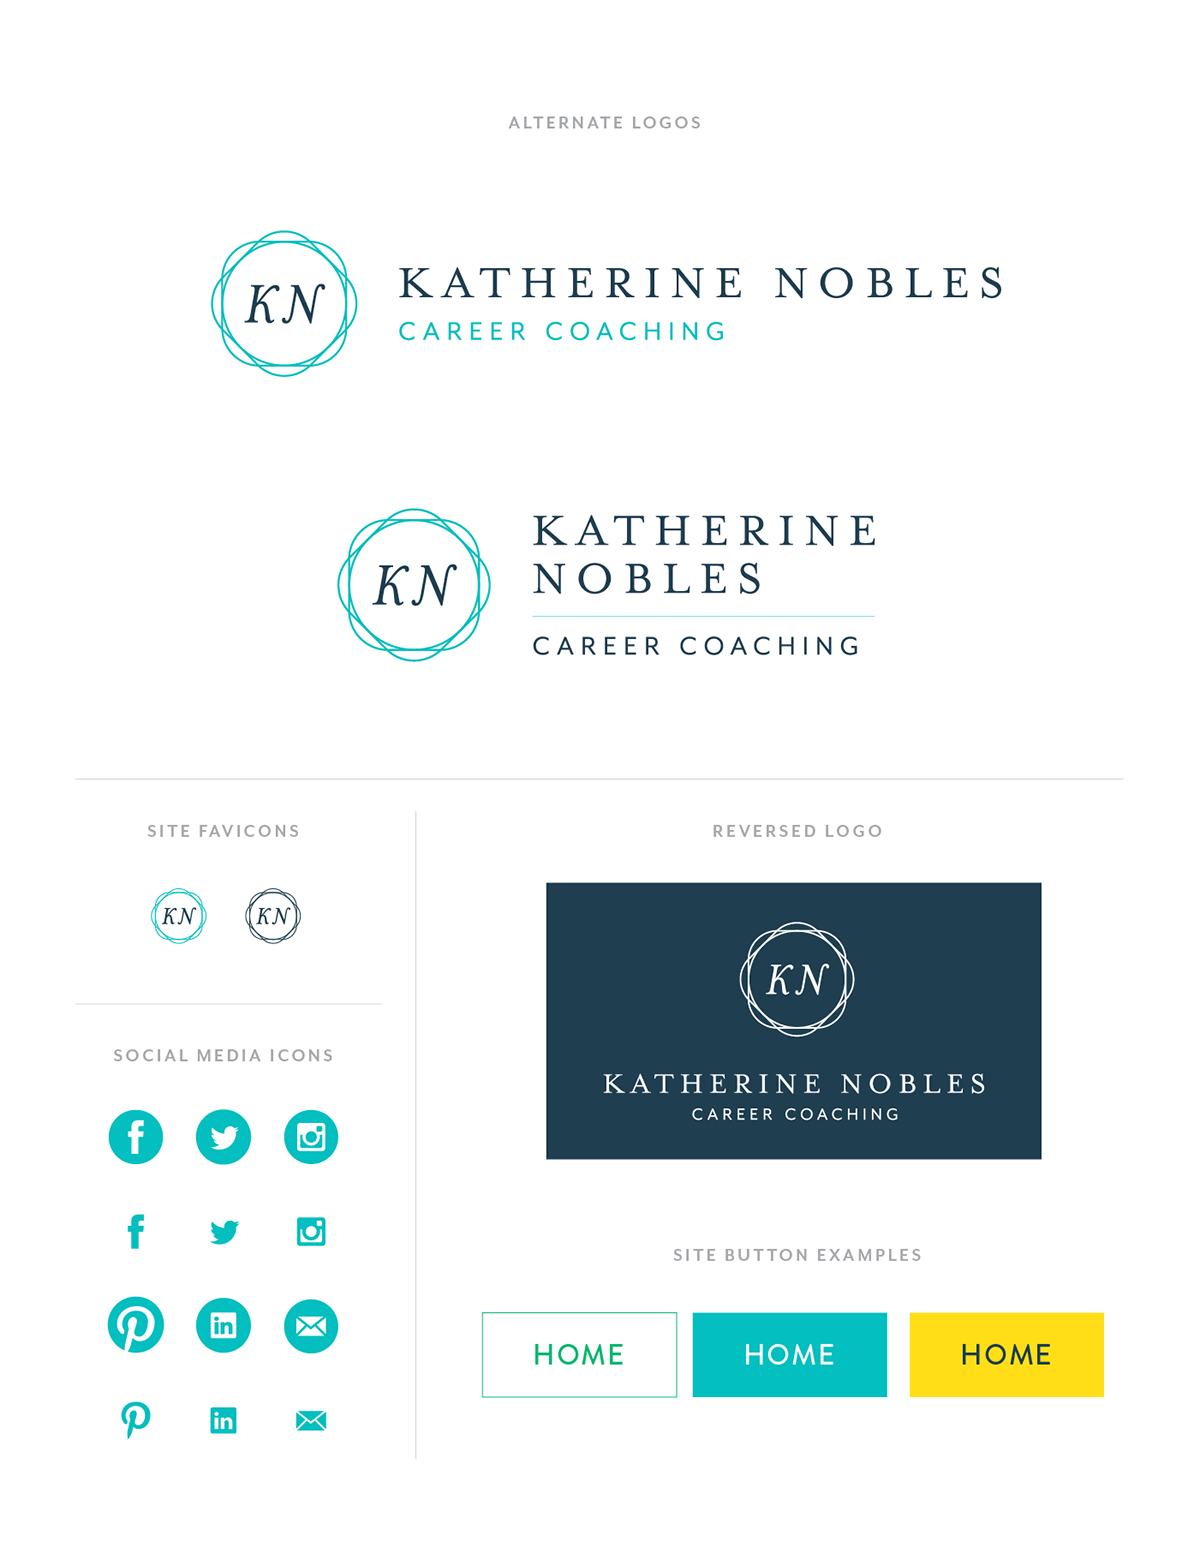 katherine nobles career coaching branding on aiga member gallery branding materials for katherine nobles a young career coach working emerging professionals these designs represent katherine s personality and